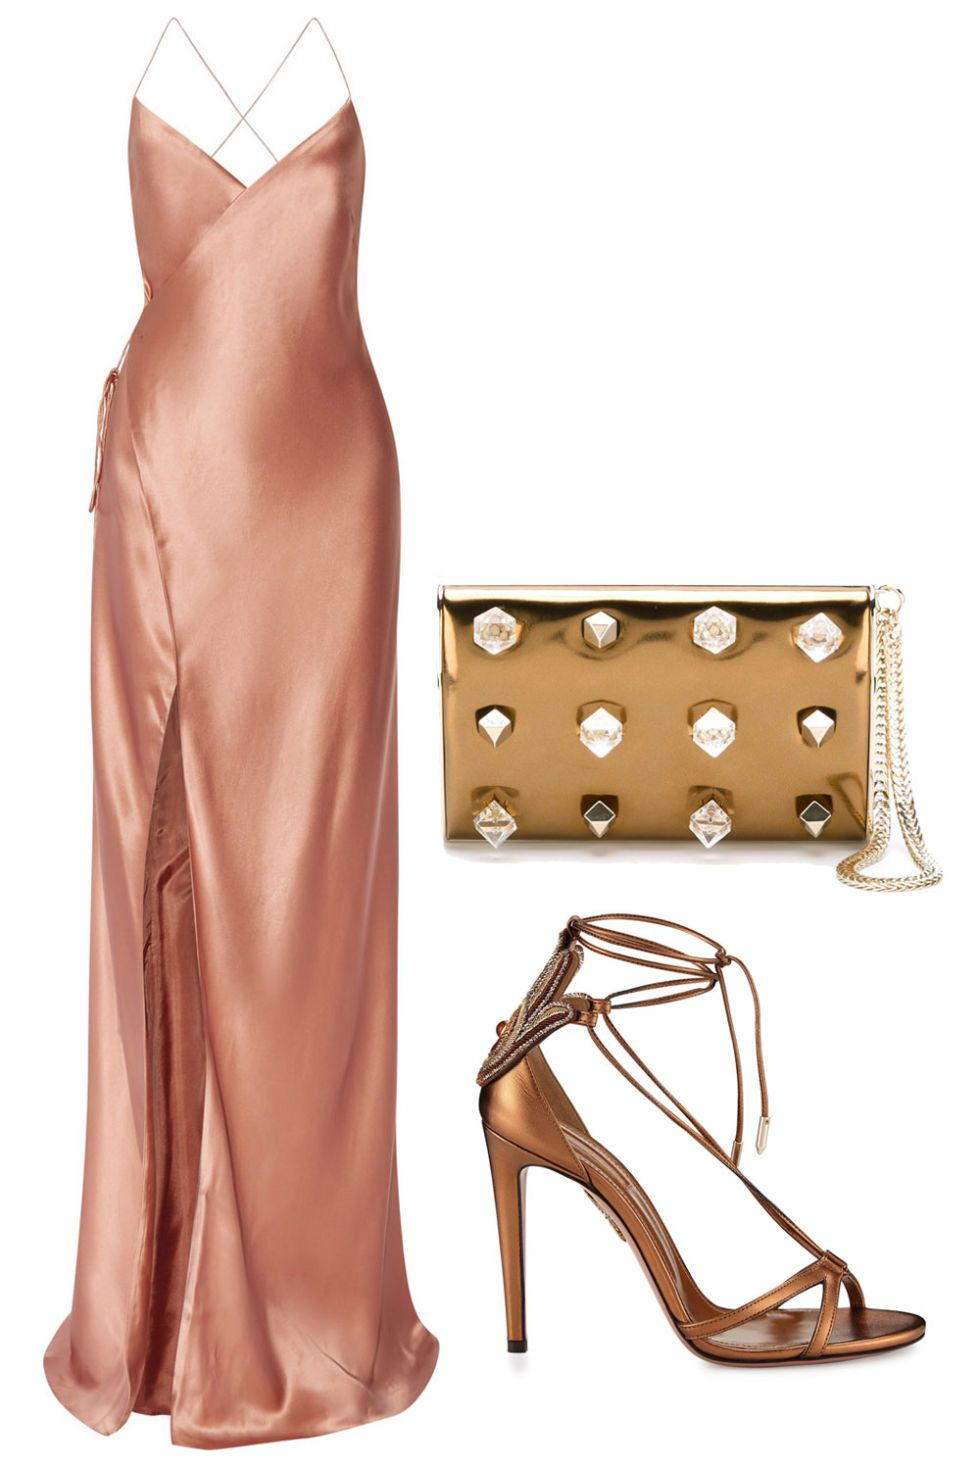 Dresses to wear to a fall wedding for a guest  What to Wear to a Fall Wedding  Gowns Formal and Fashion